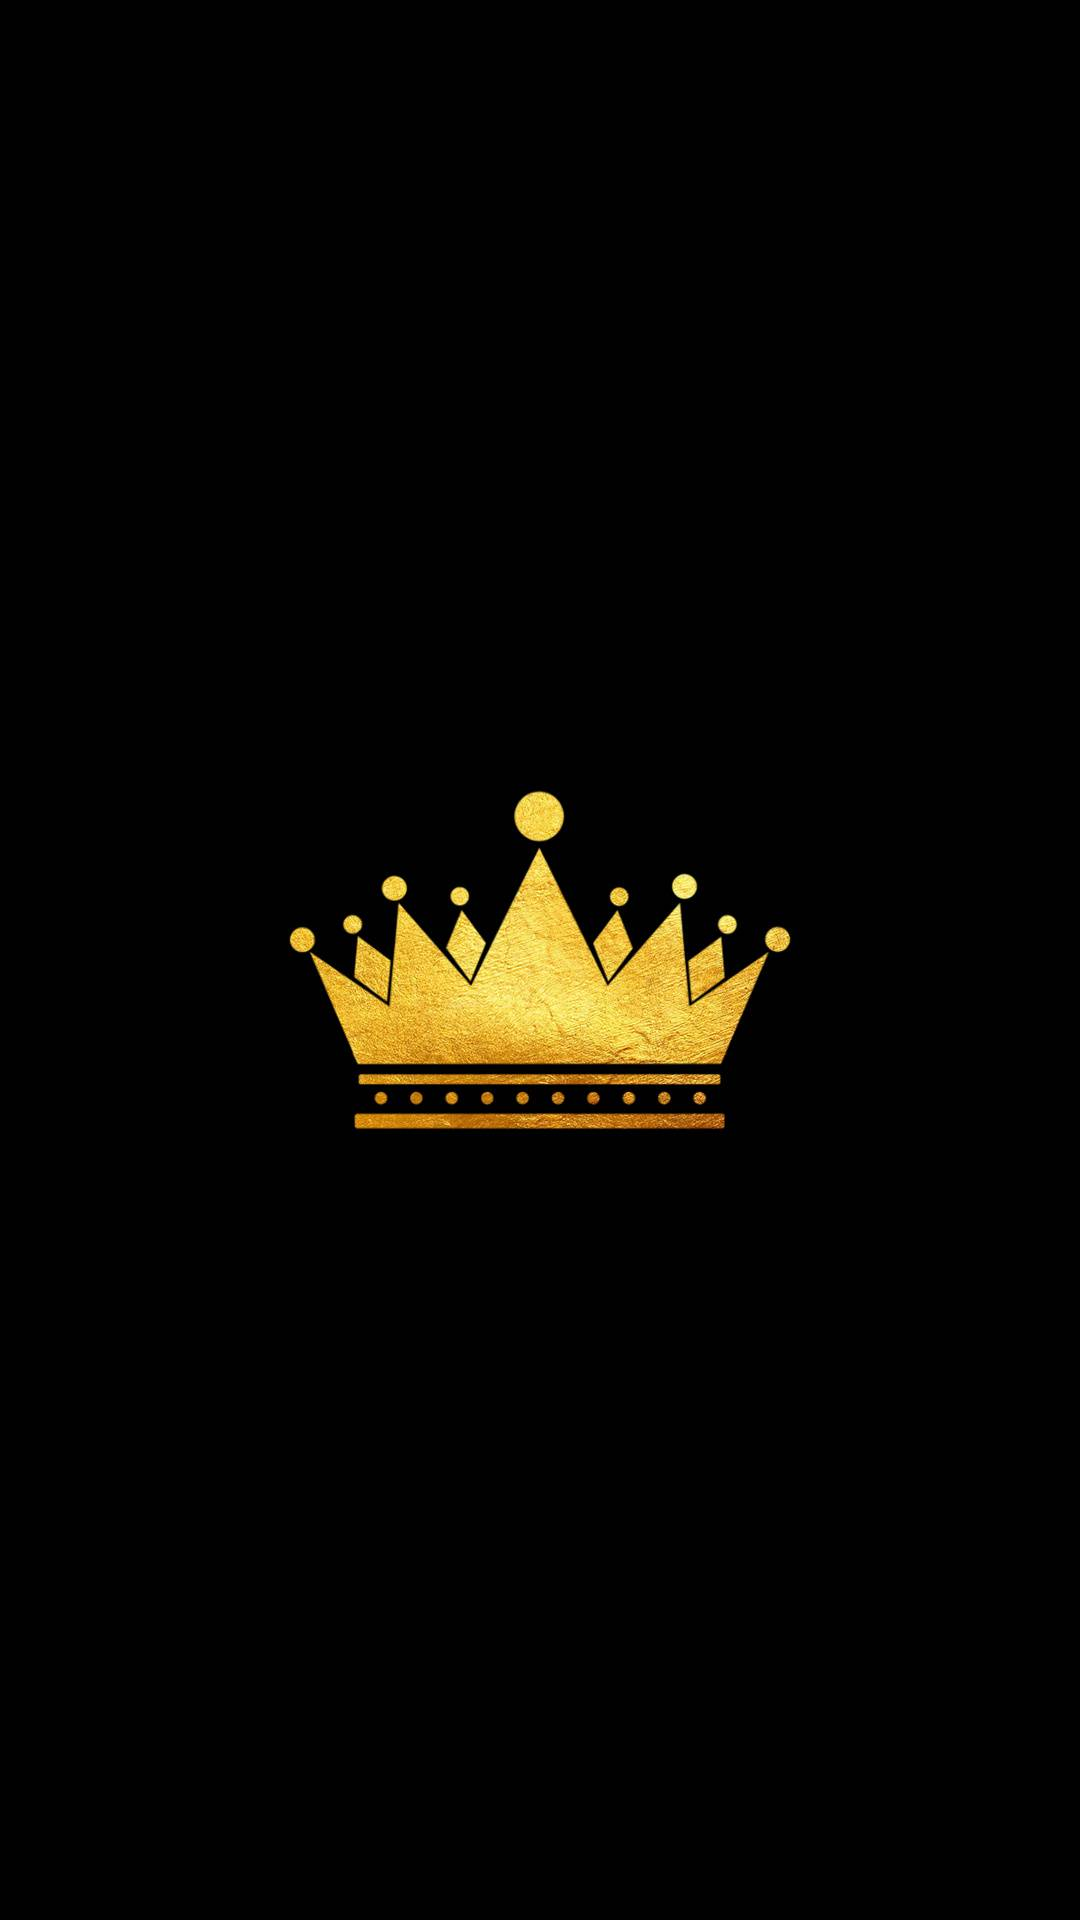 King Crown Hd Iphone Wallpaper Iphone Wallpapers